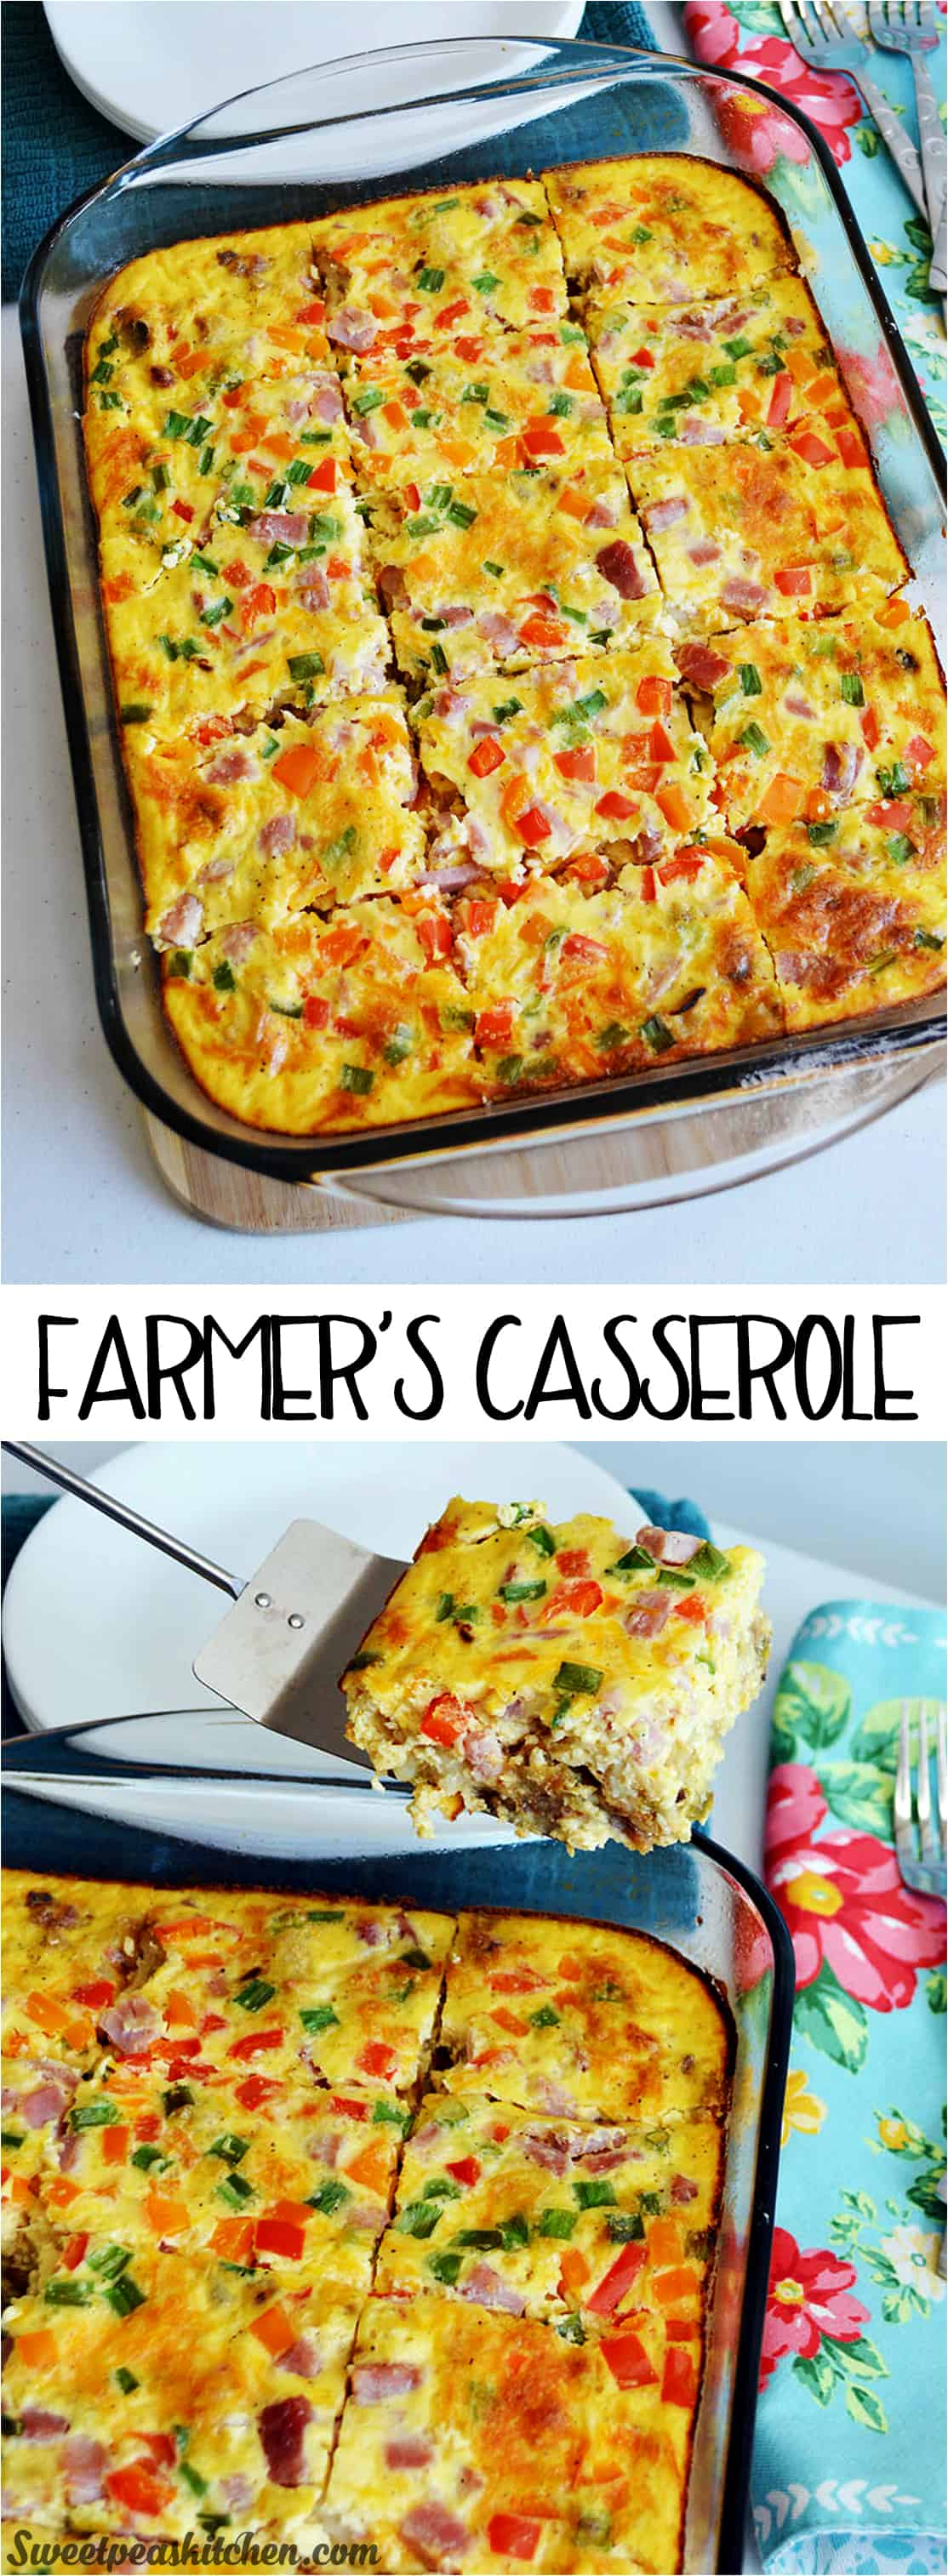 Farmer's Healthy Breakfast Casserole